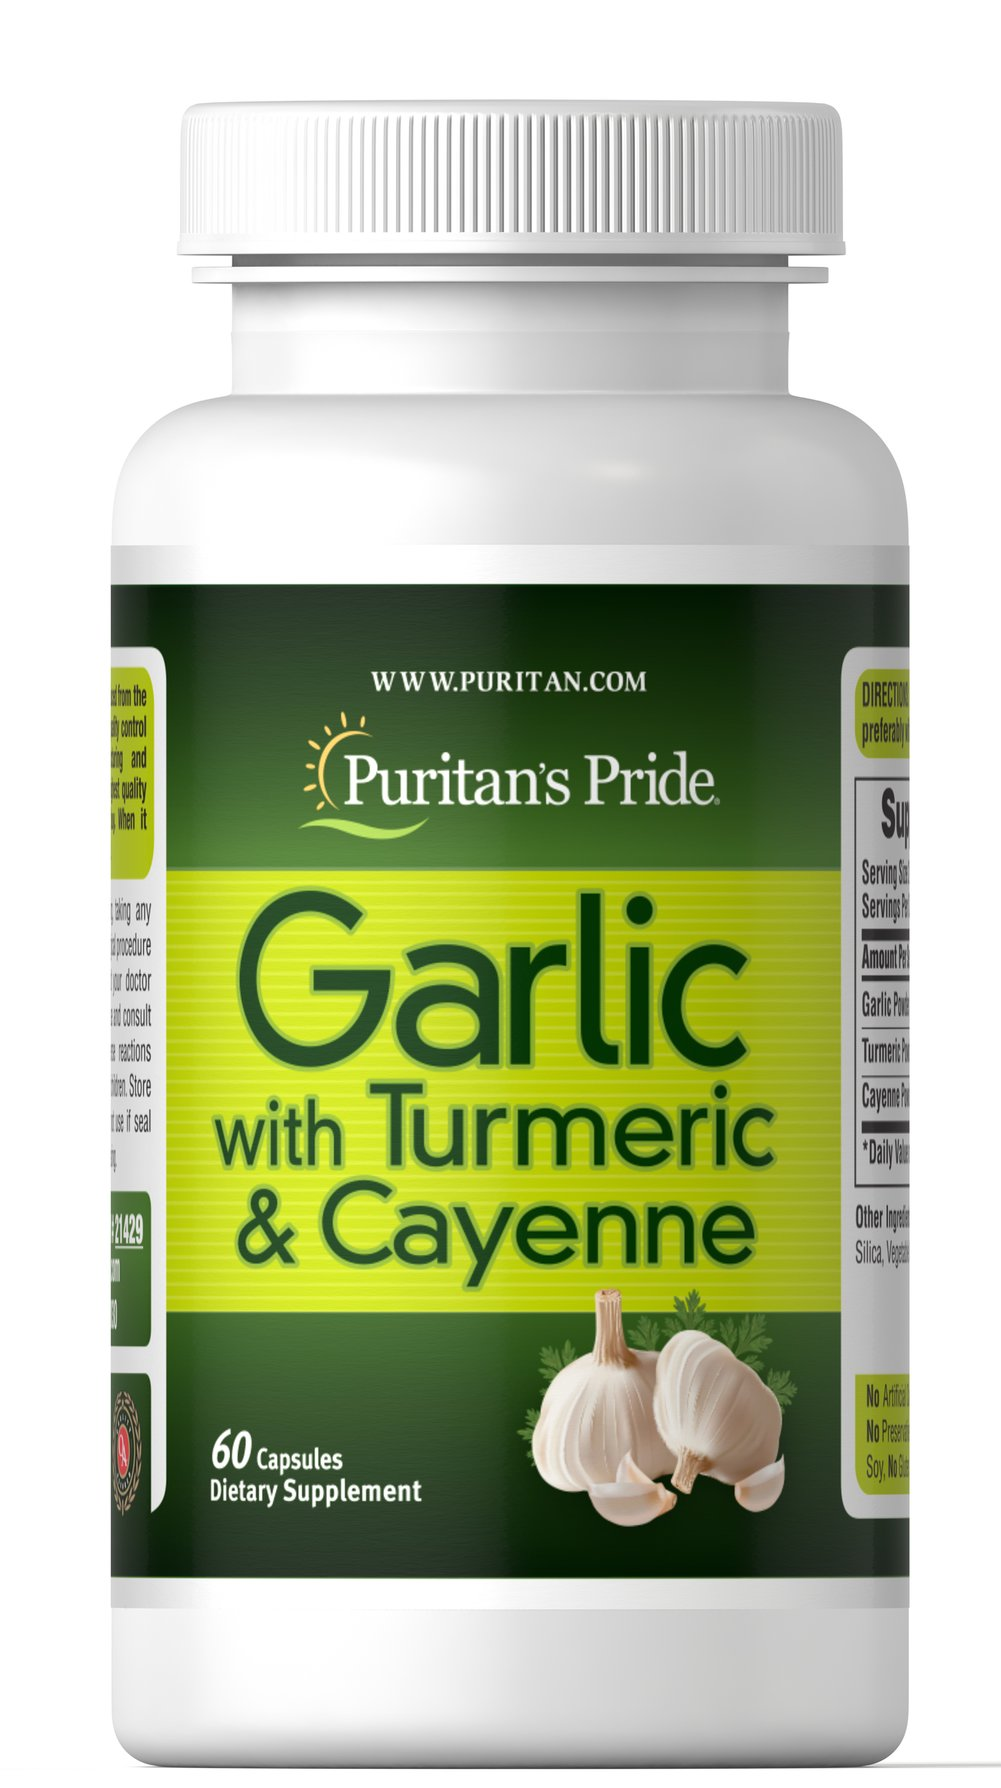 Garlic with Turmeric & Cayenne 600 mg Thumbnail Alternate Bottle View